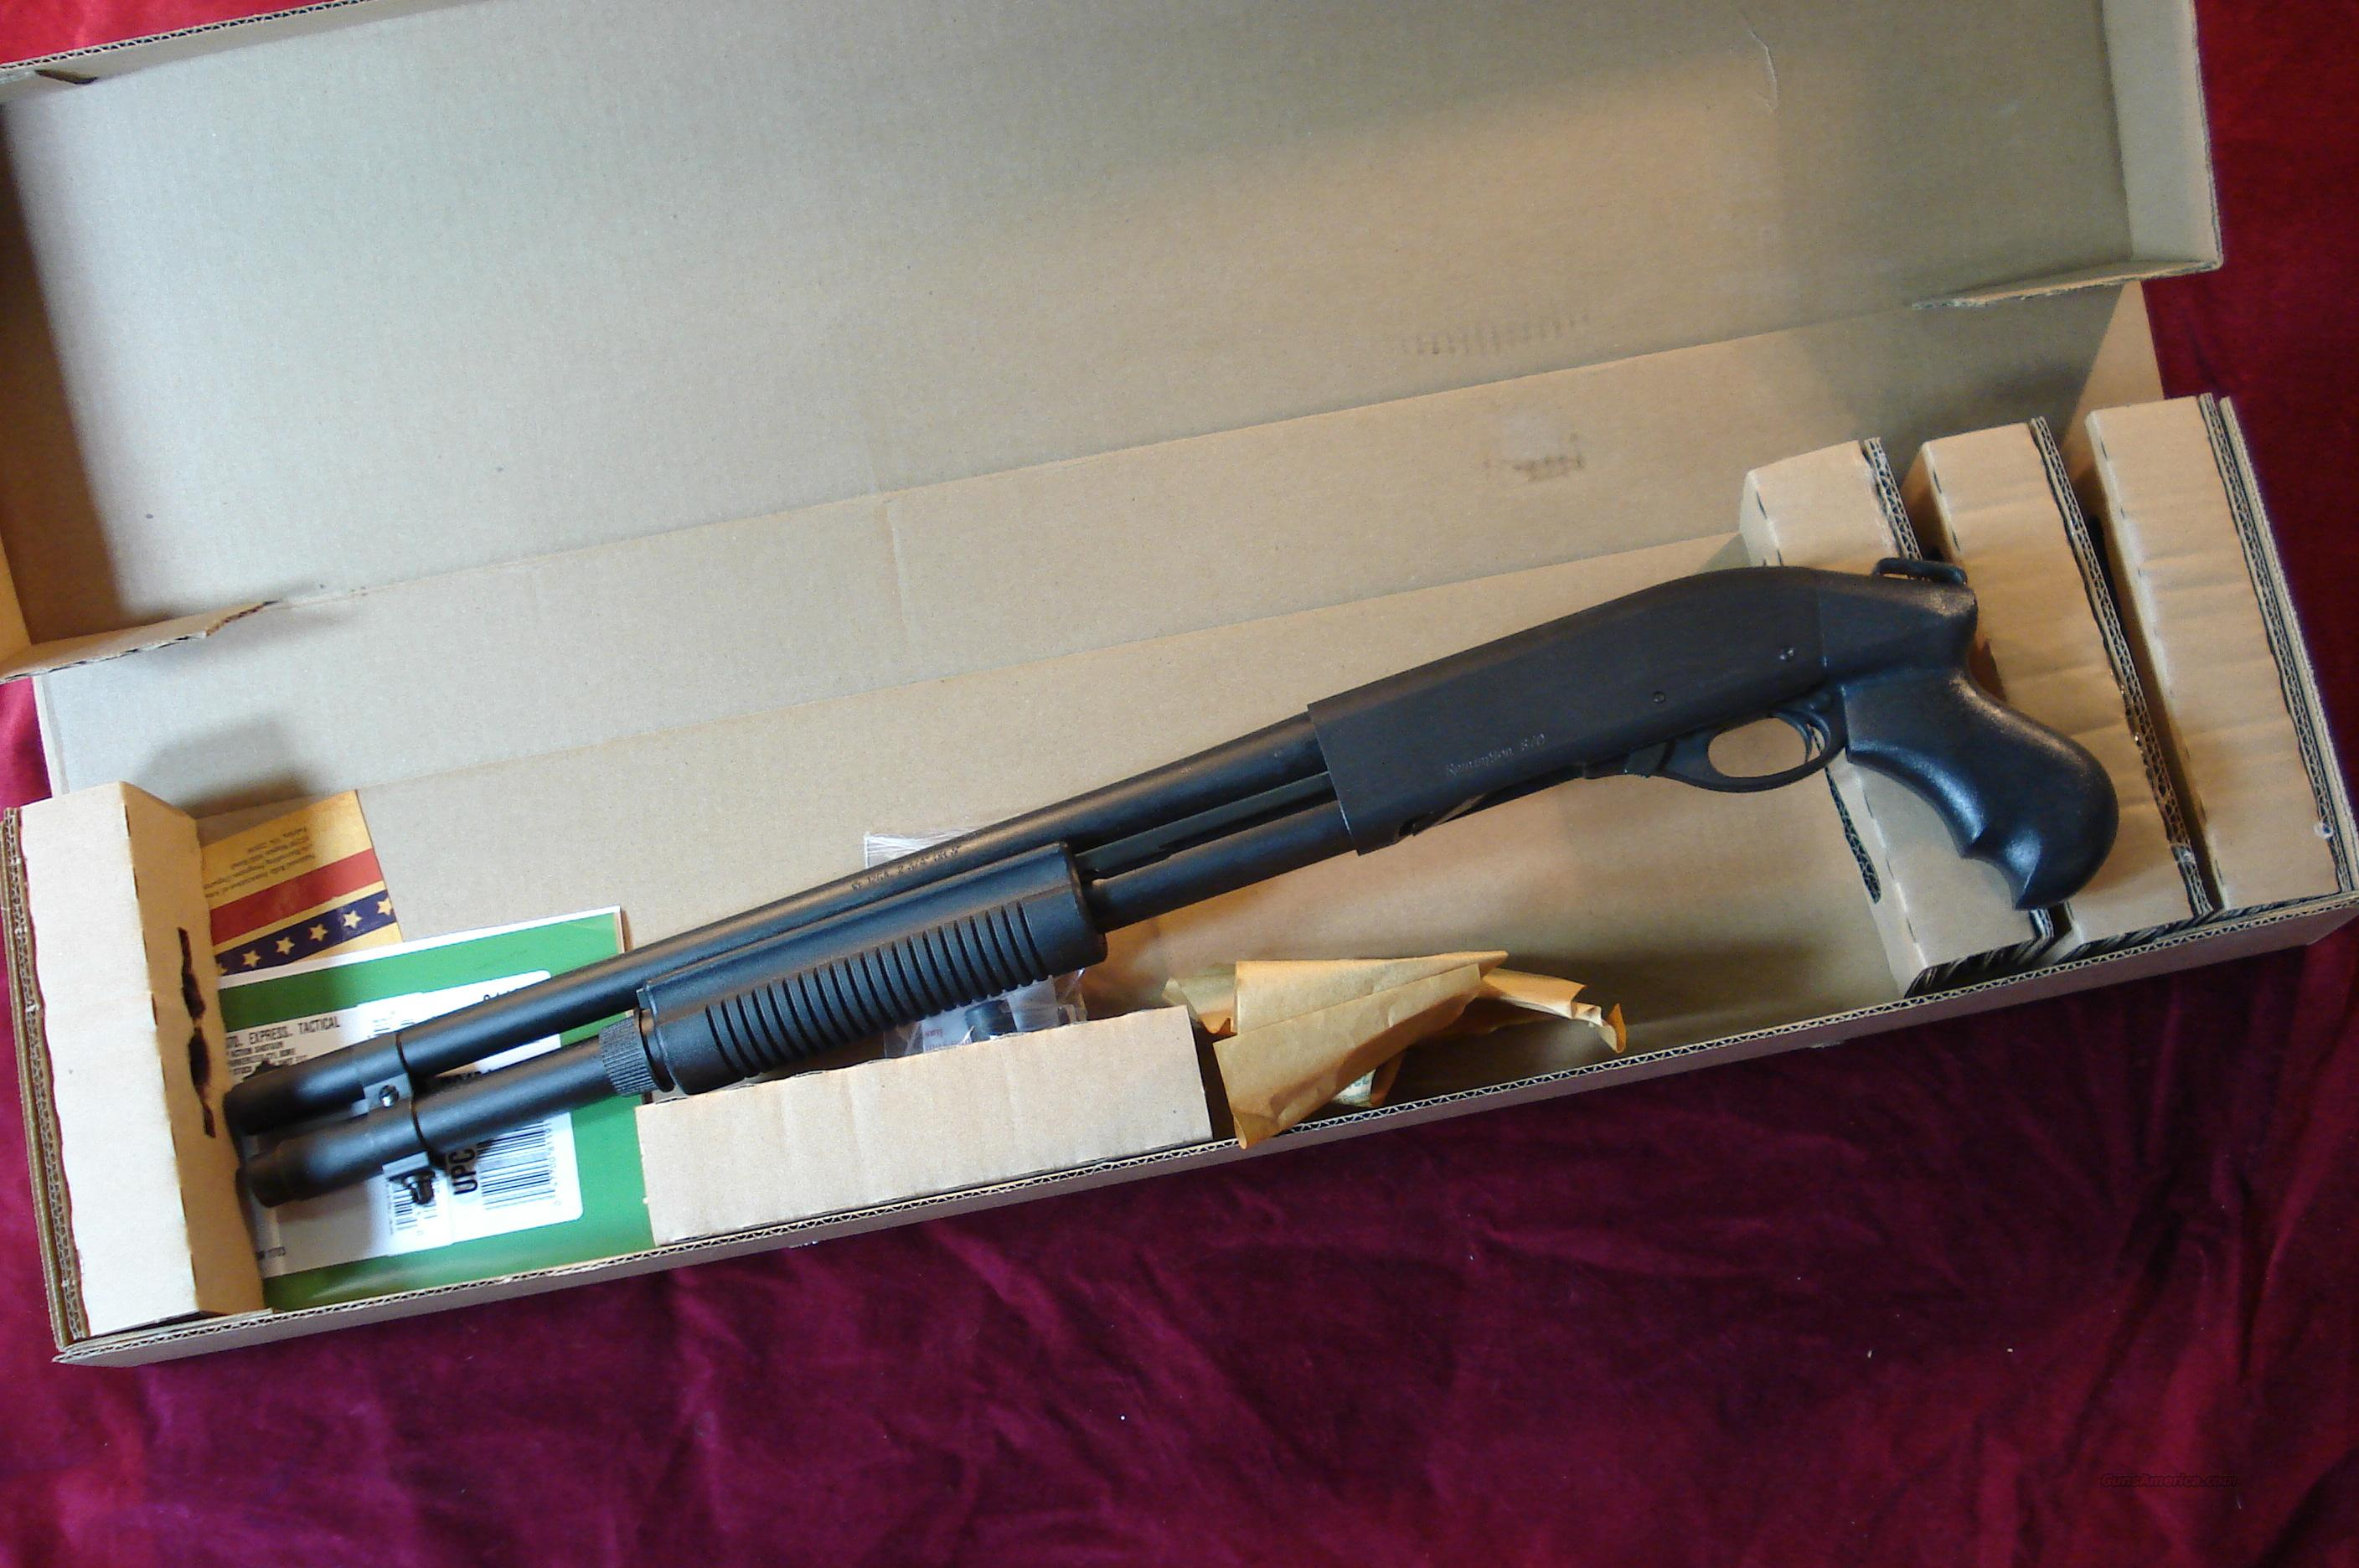 "REMINGTON 870 HD (HOME DEFENSE) PISTOL GRIP 12G PUMP SHOTGUN 18.5"" BARREL,  FACTORY MAG EXTENSION 7-SHOT MAGAZINE NEW  Guns > Shotguns > Remington Shotguns  > Pump > Tactical"